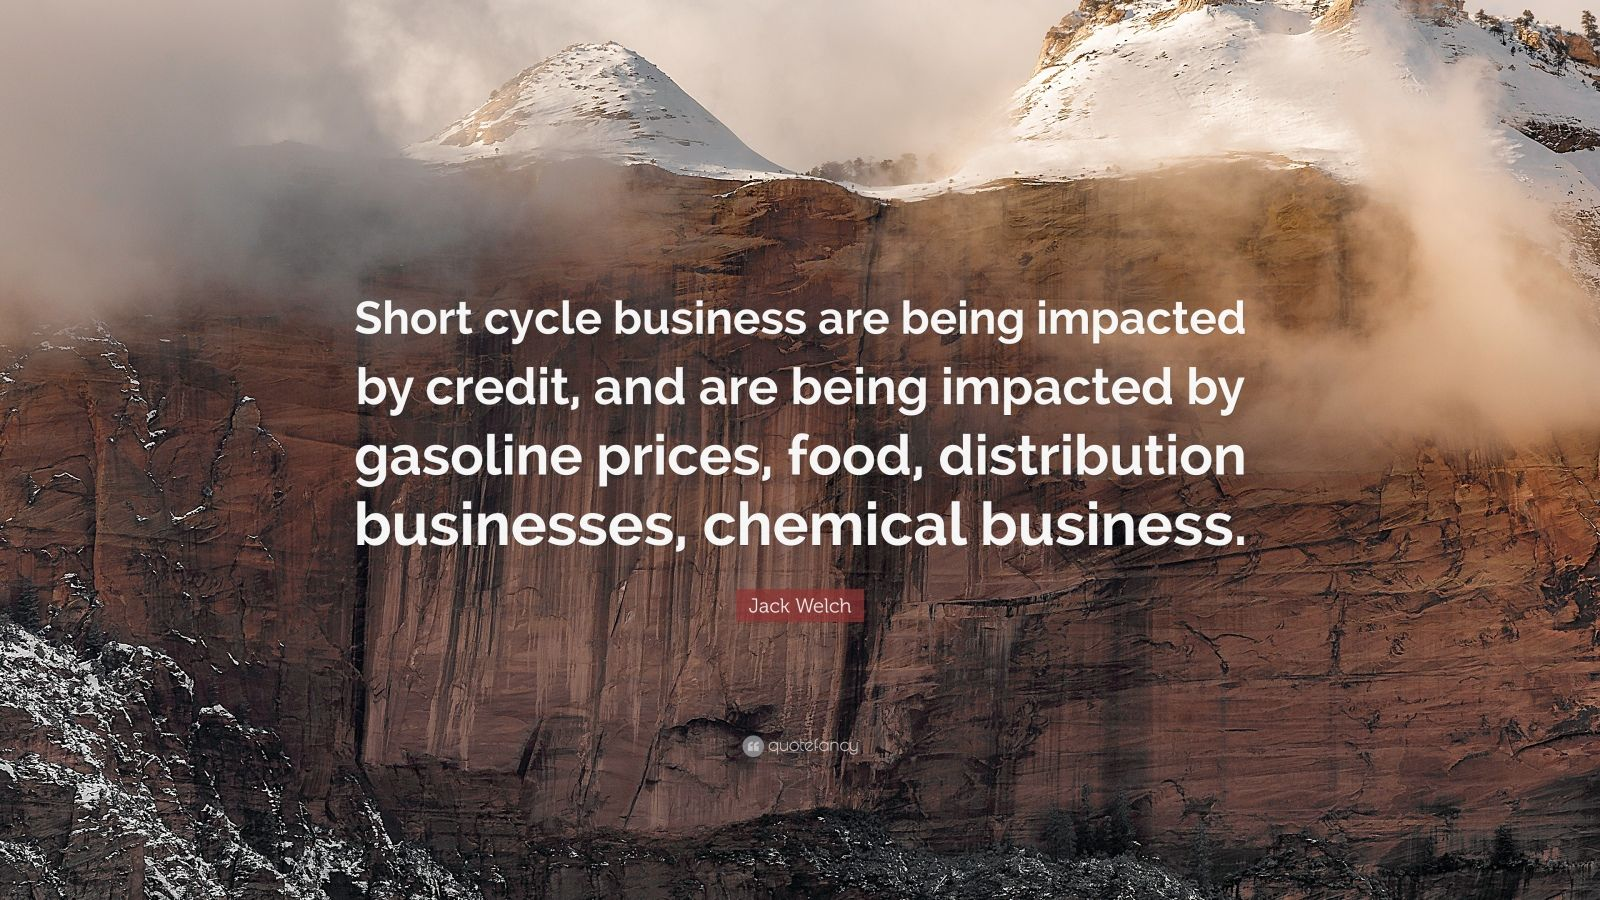 """Jack Welch Quote: """"Short cycle business are being impacted by credit, and are being impacted by gasoline prices, food, distribution businesses, chemical business."""""""